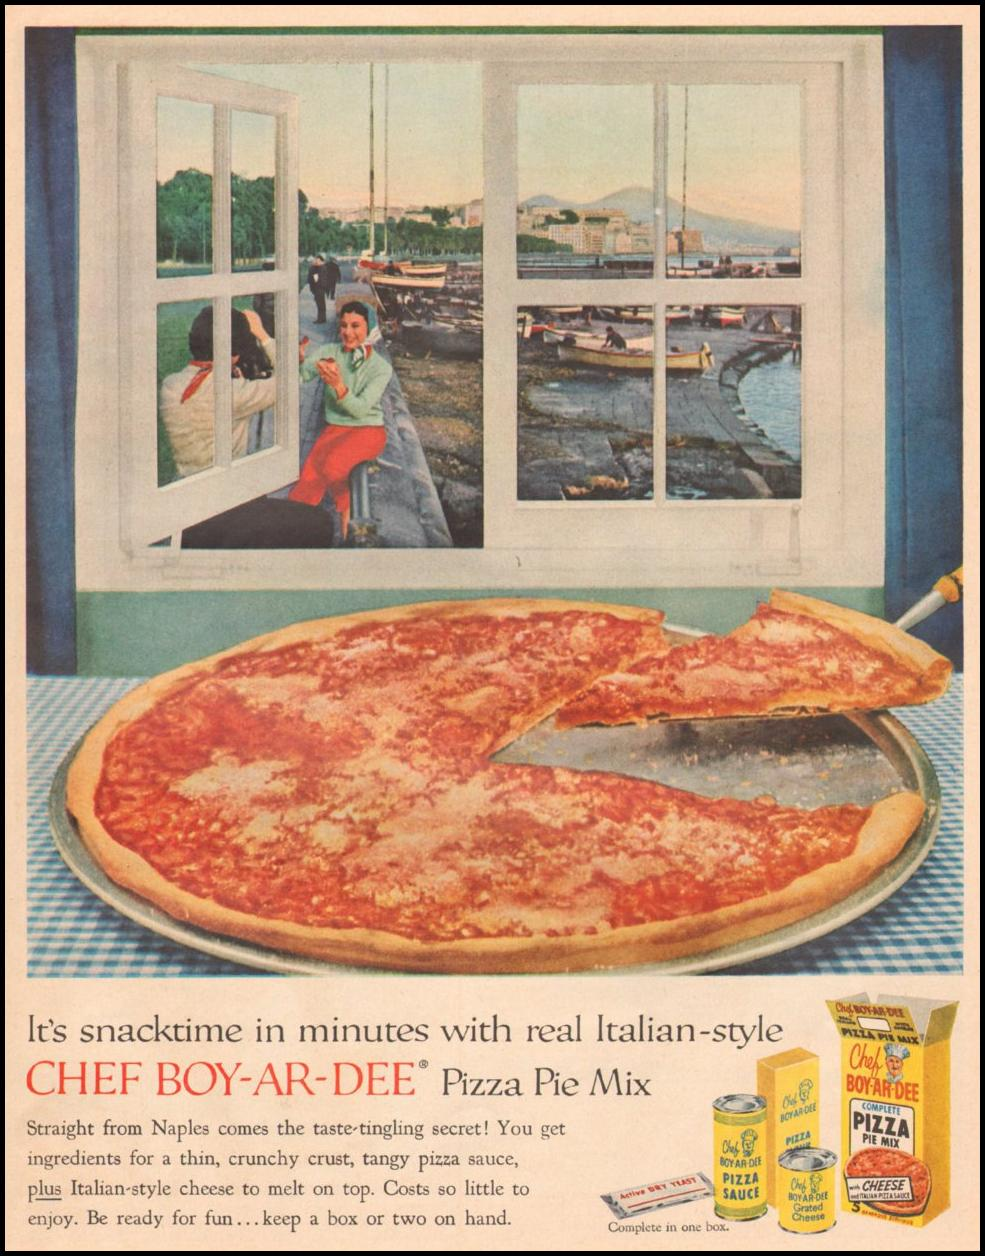 BOY-AR-DEE PIZZA PIE MIX LIFE 05/19/1958